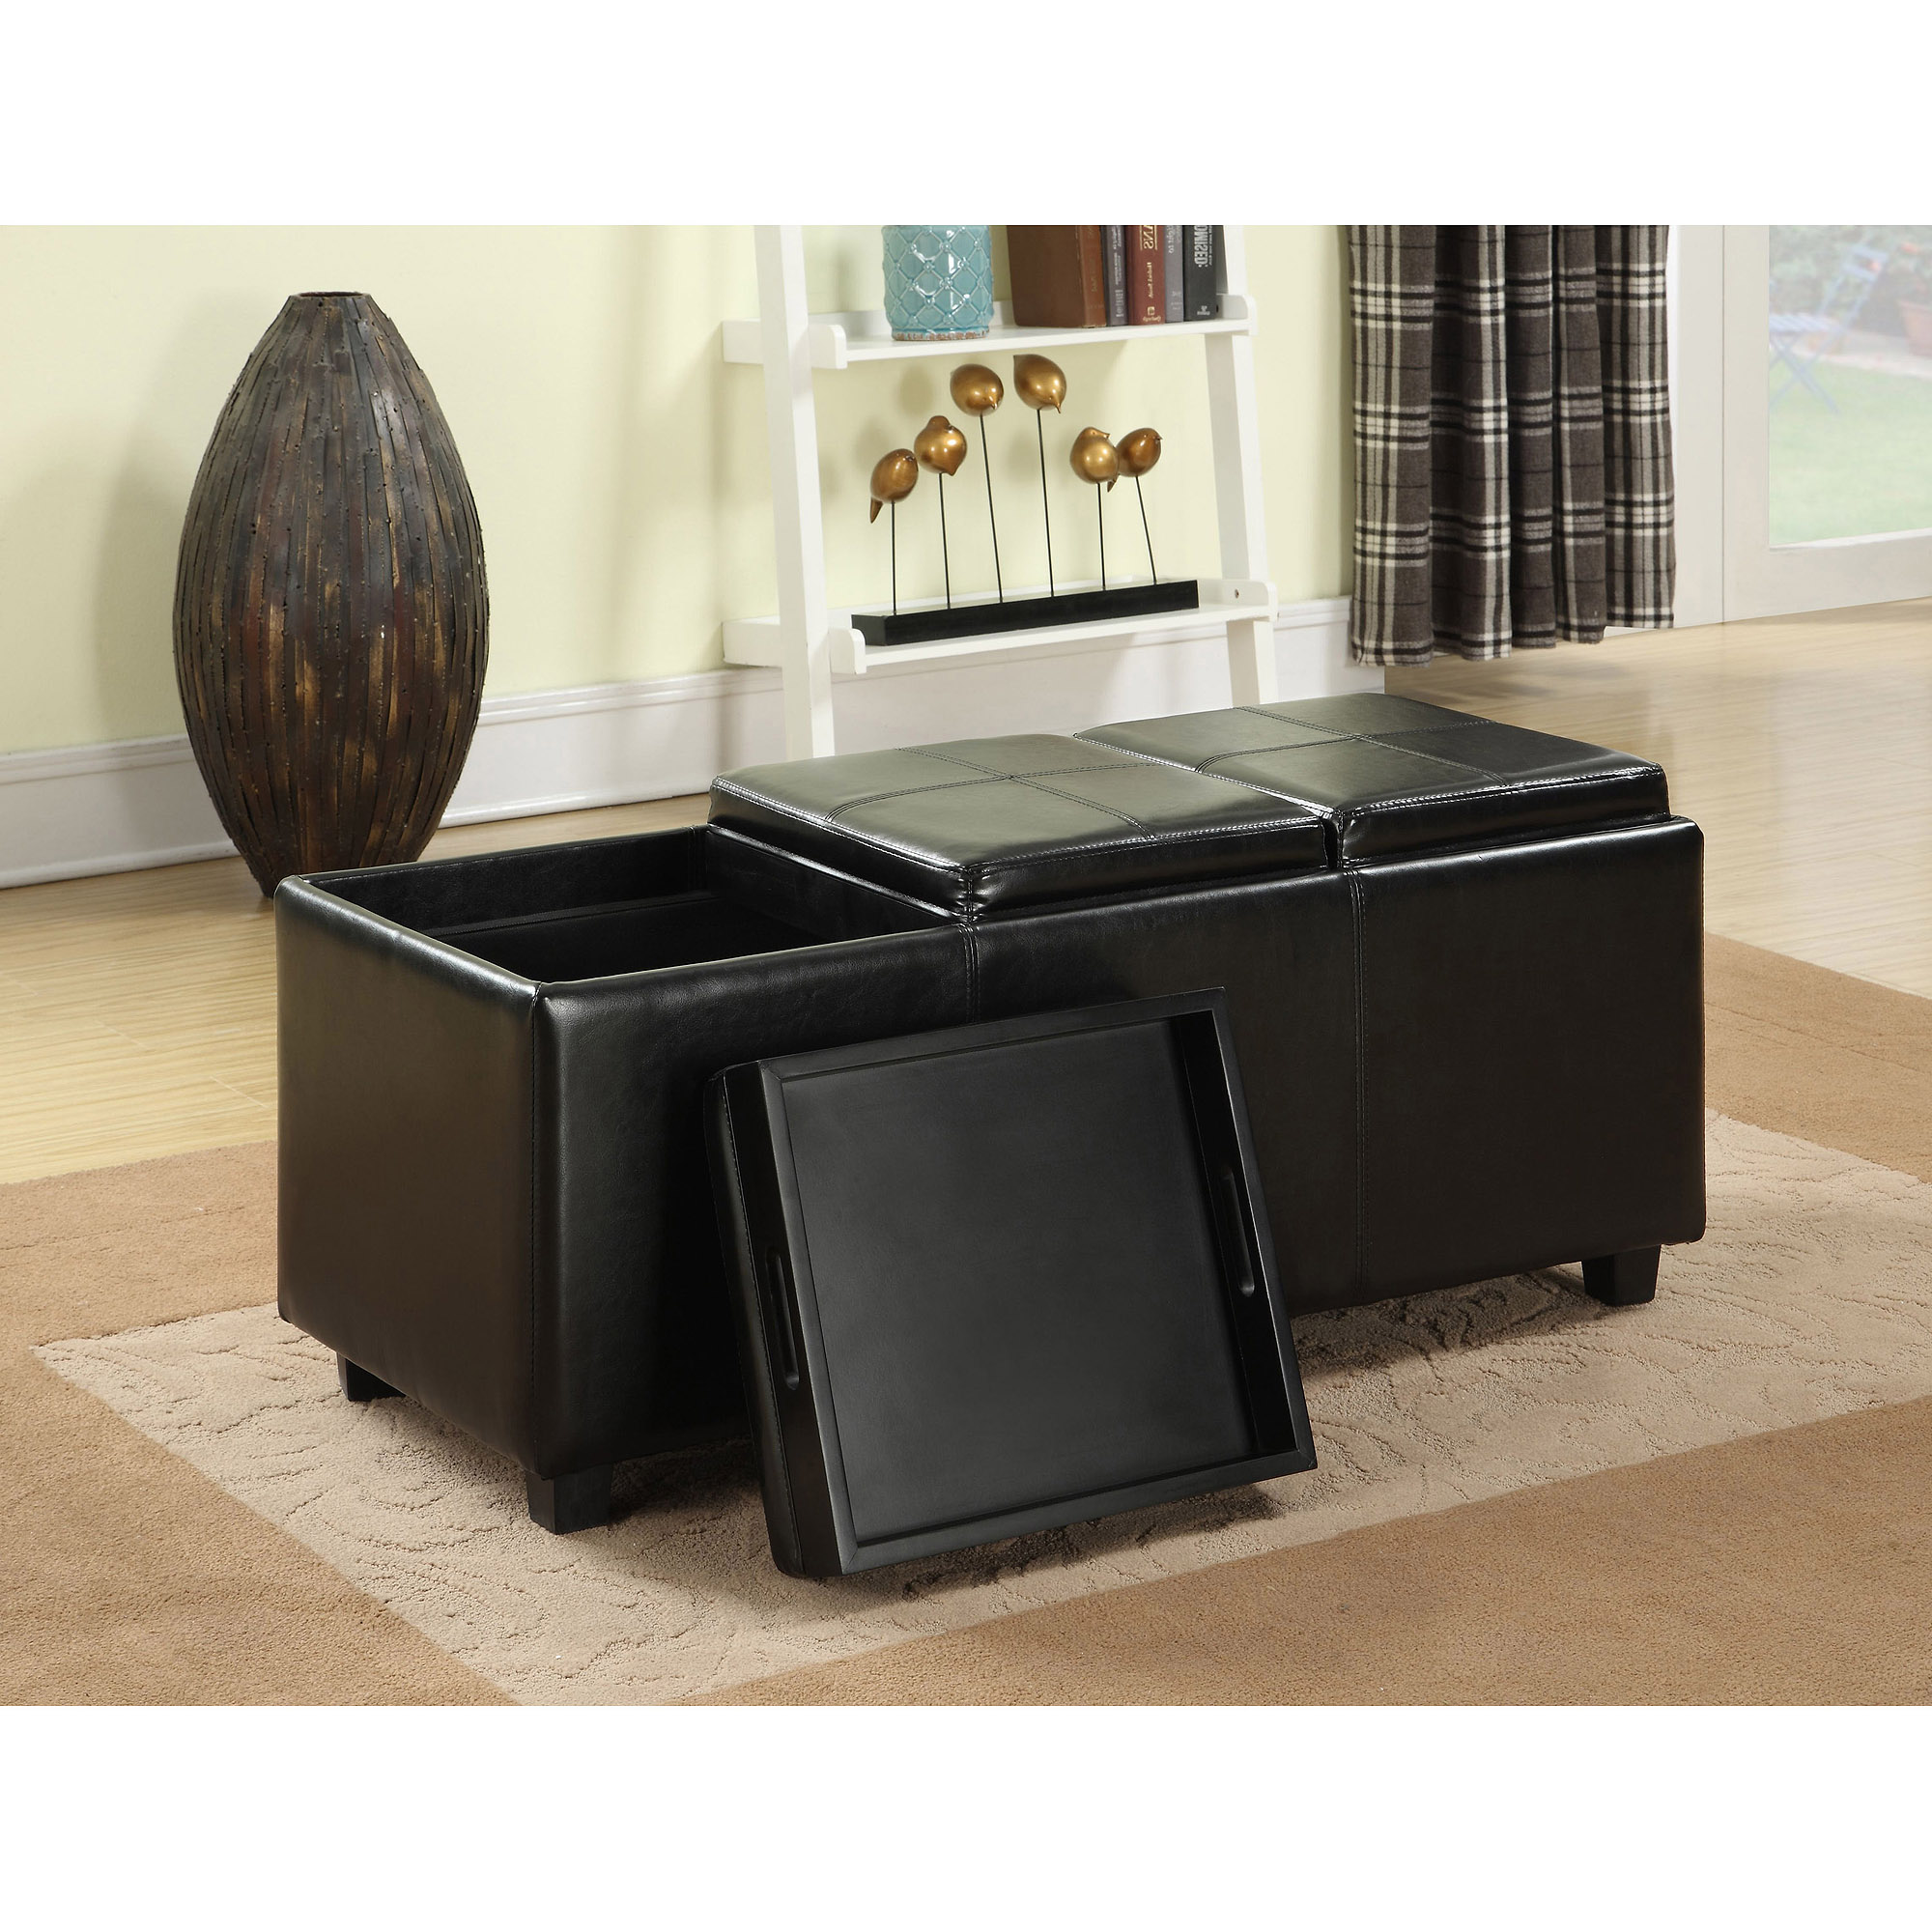 Avalon Extra Large Storage Ottoman With 3 Serving Trays Ebay